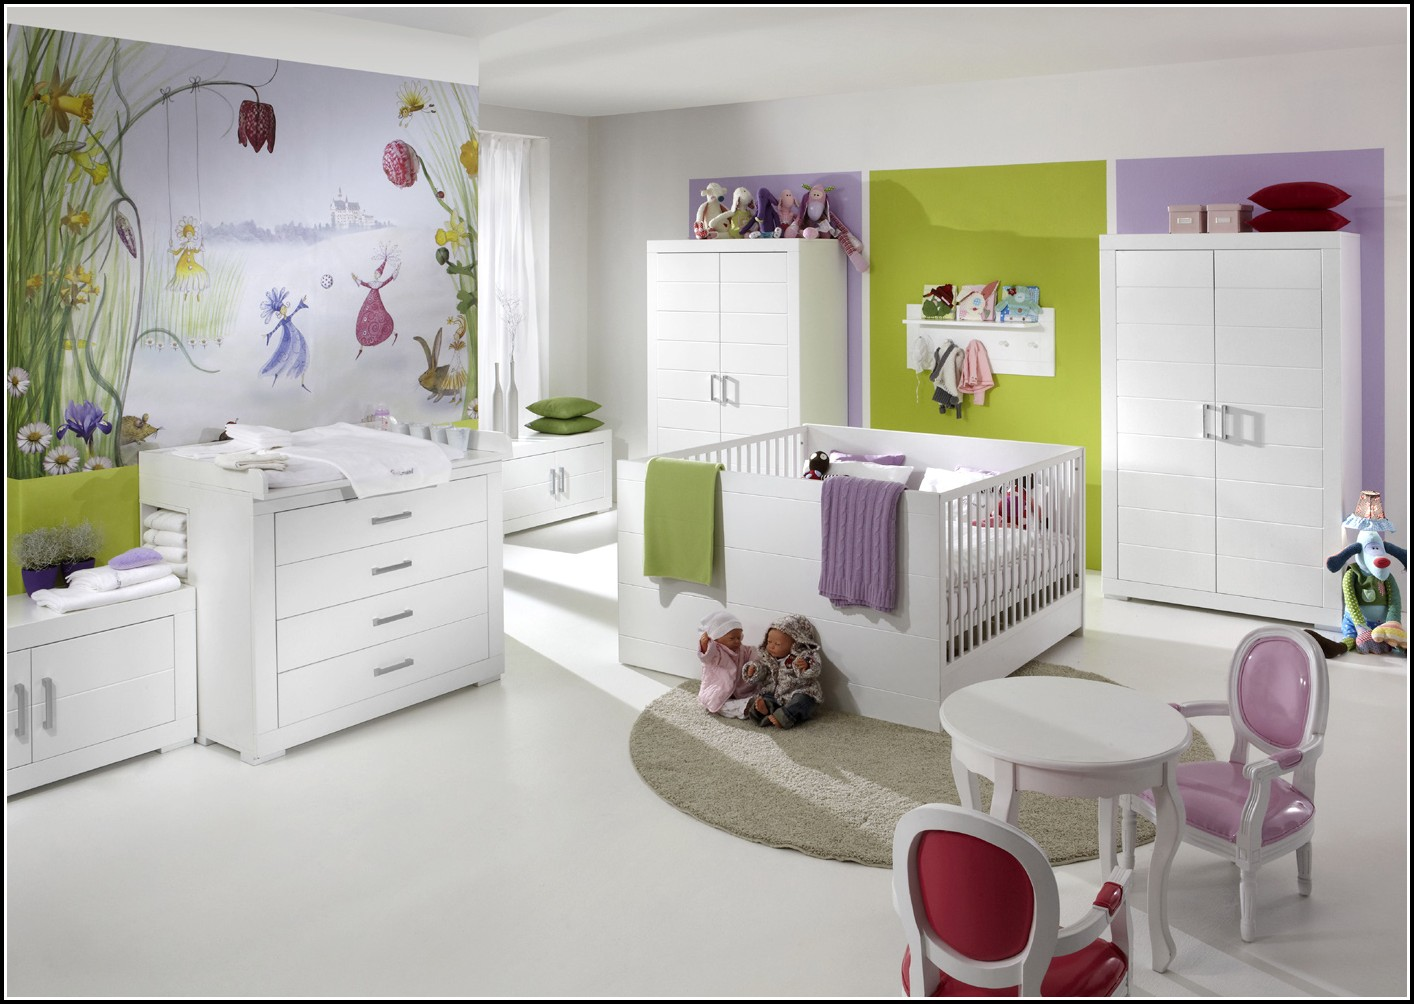 Mini Meise 01 Kinderzimmer